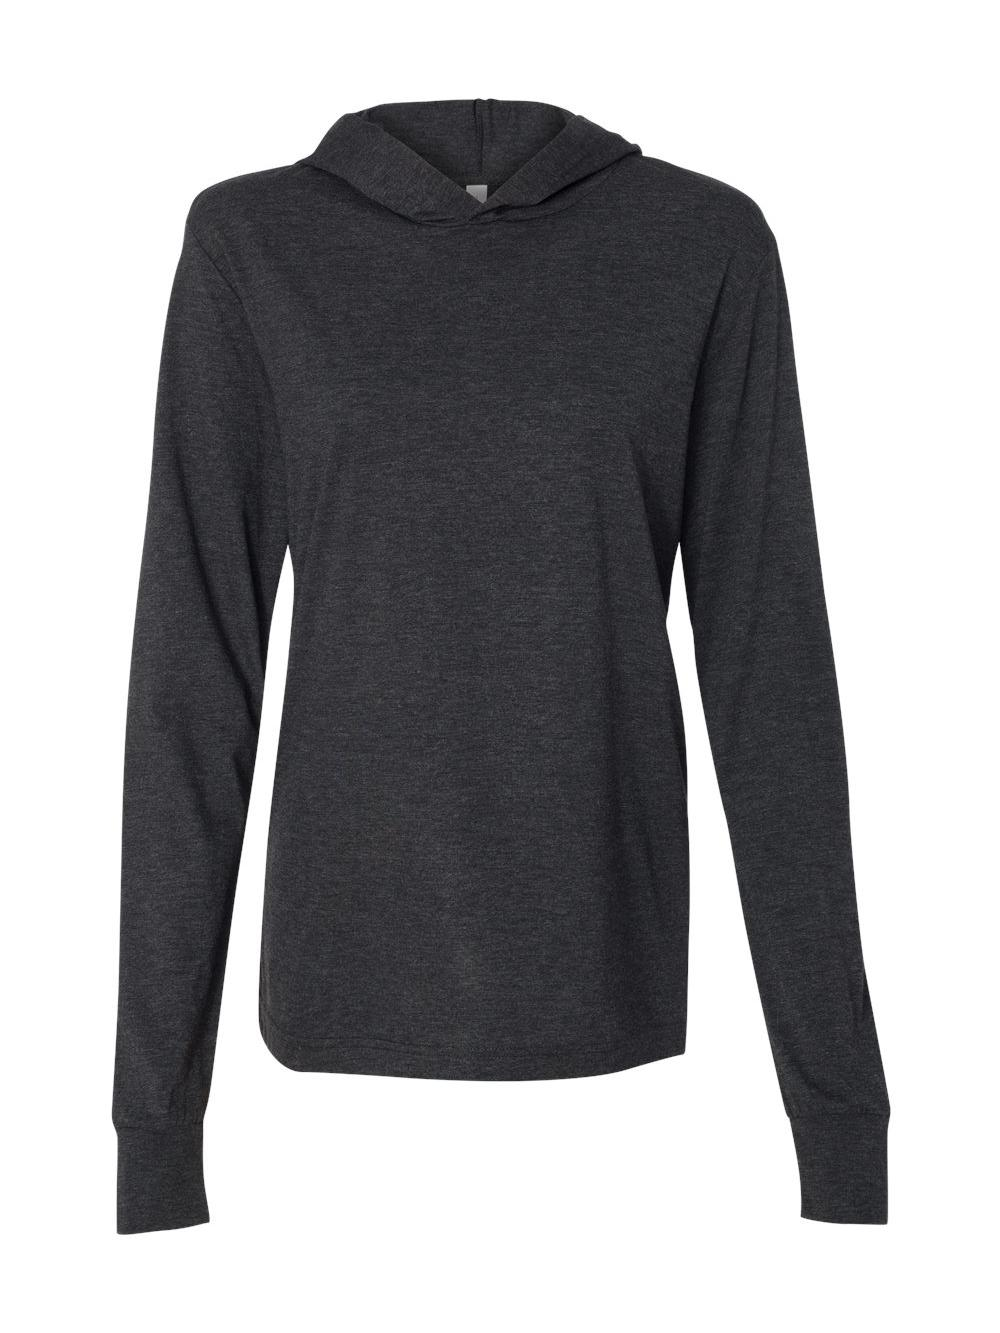 Bella-Canvas-Unisex-Long-Sleeve-Jersey-Hooded-Tee-3512 thumbnail 9